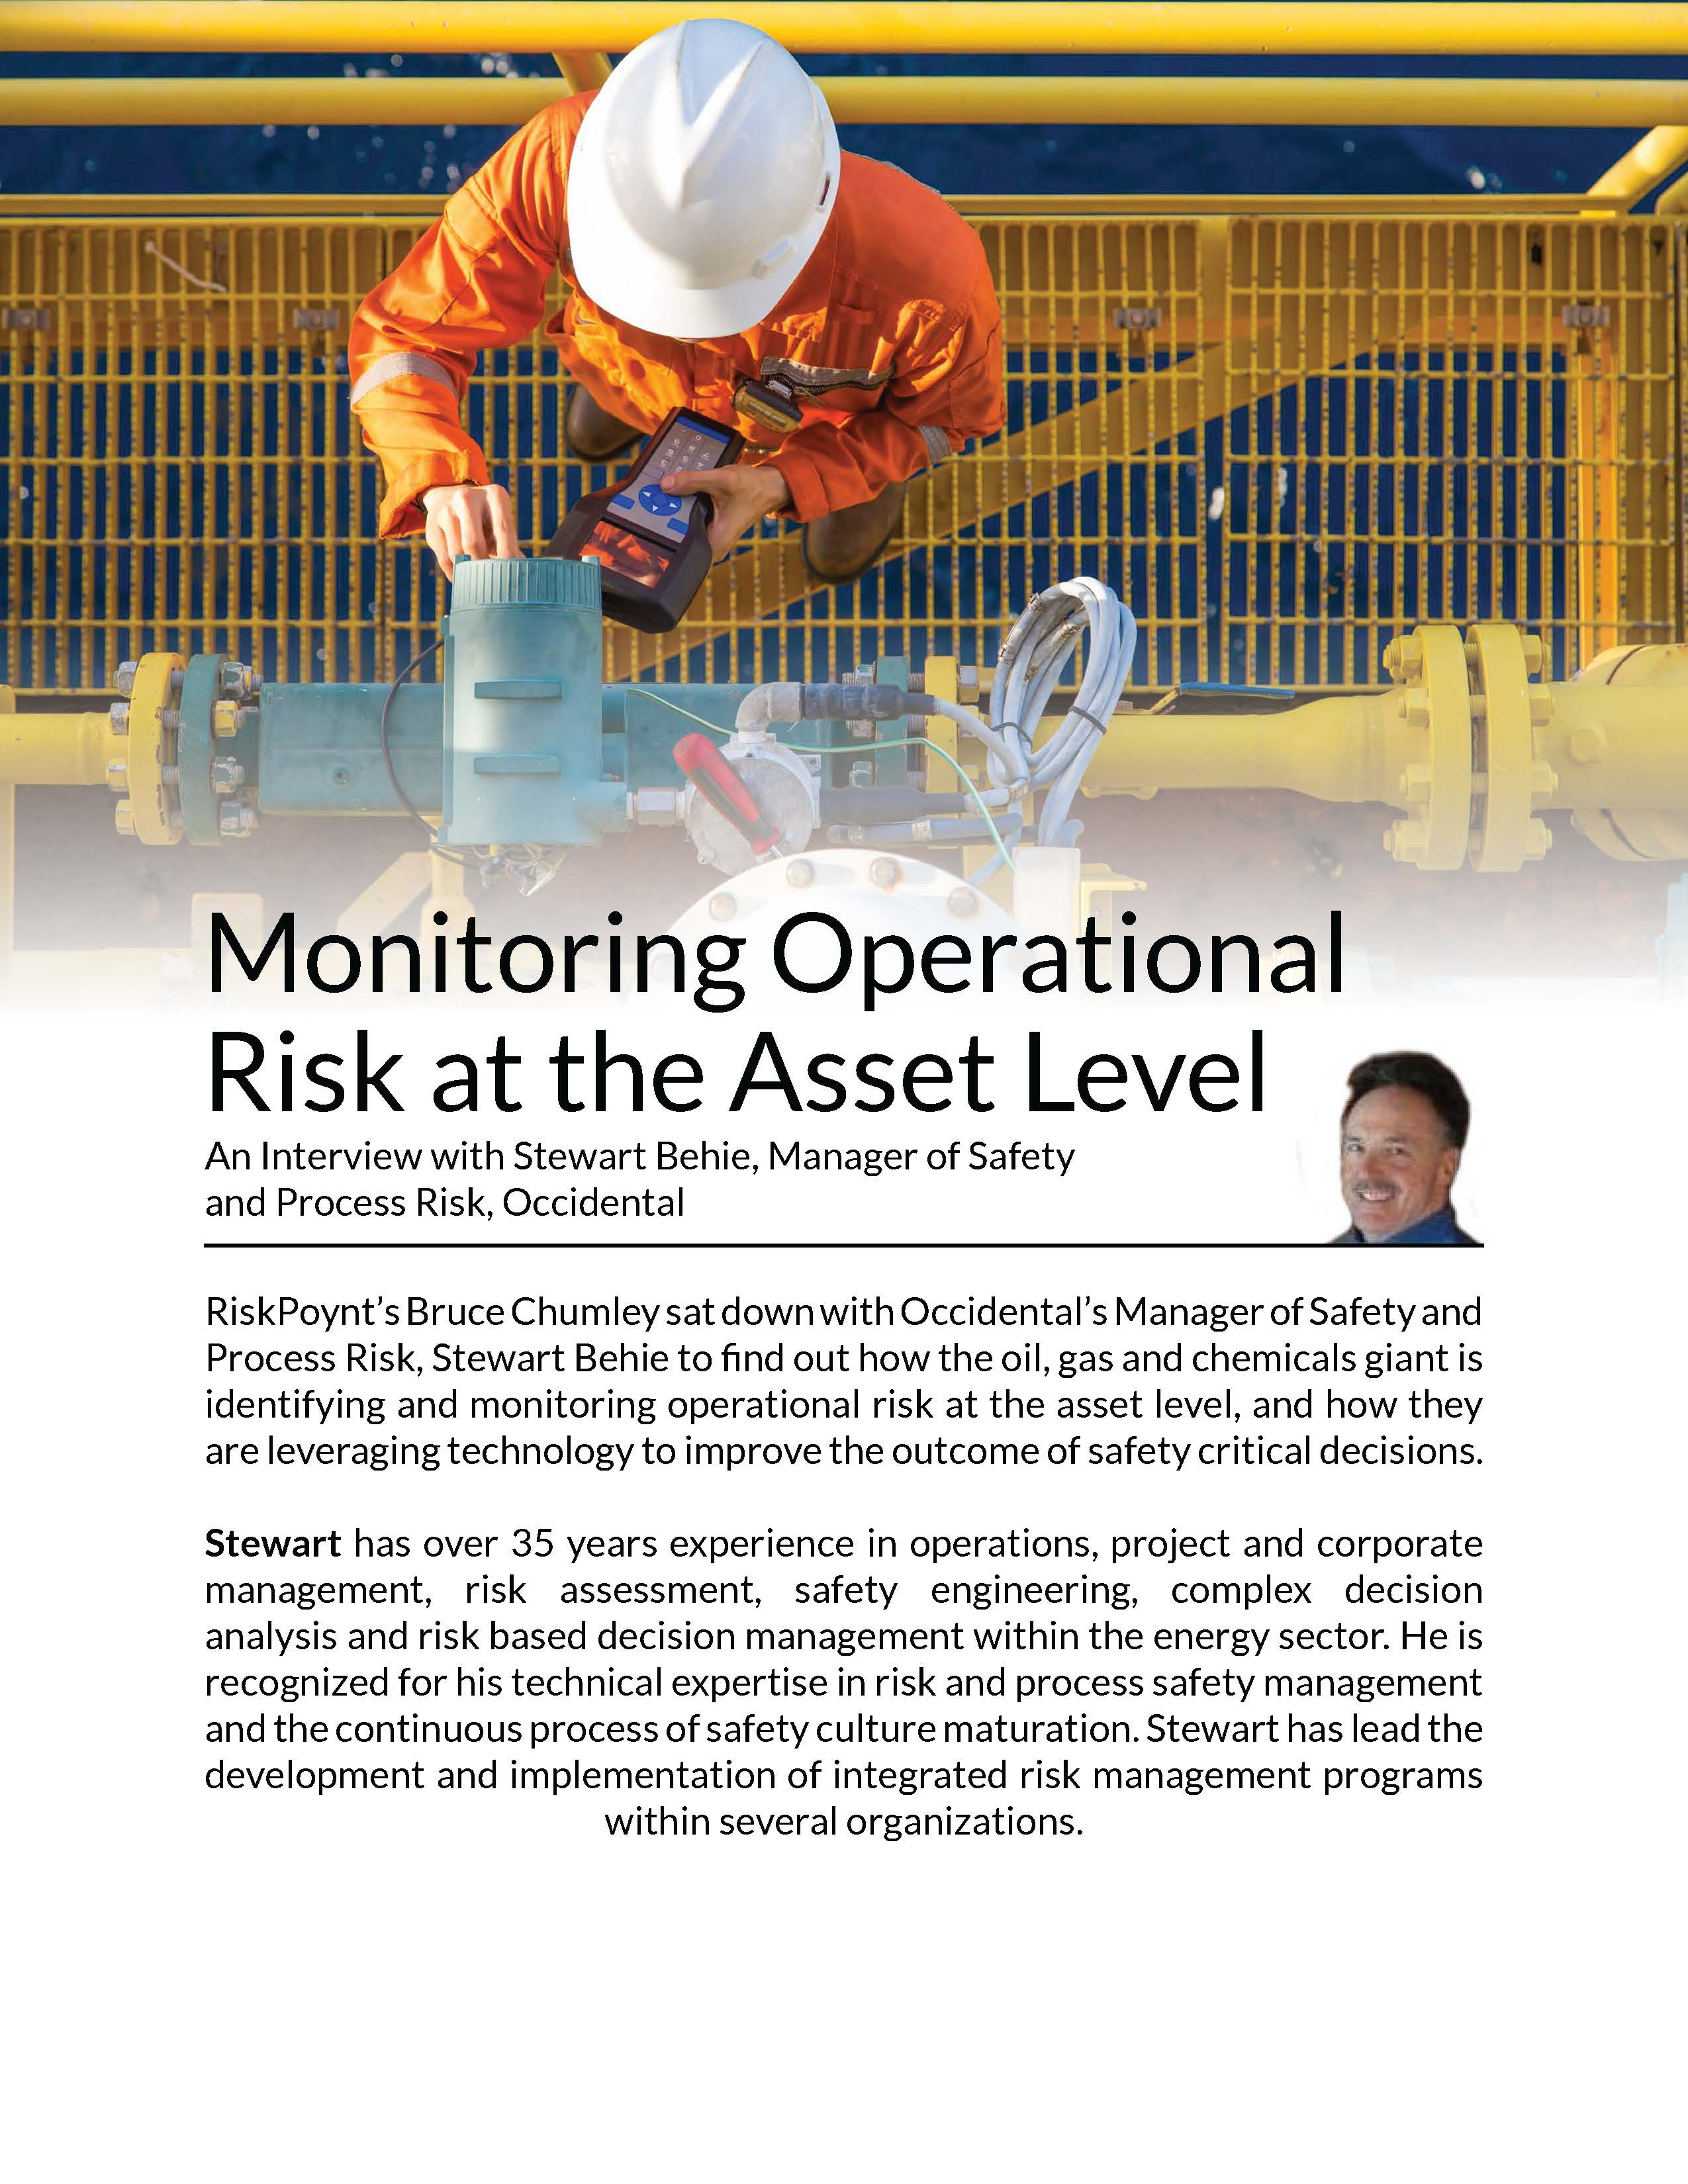 Monitoring Operational Risk at the Asset Level